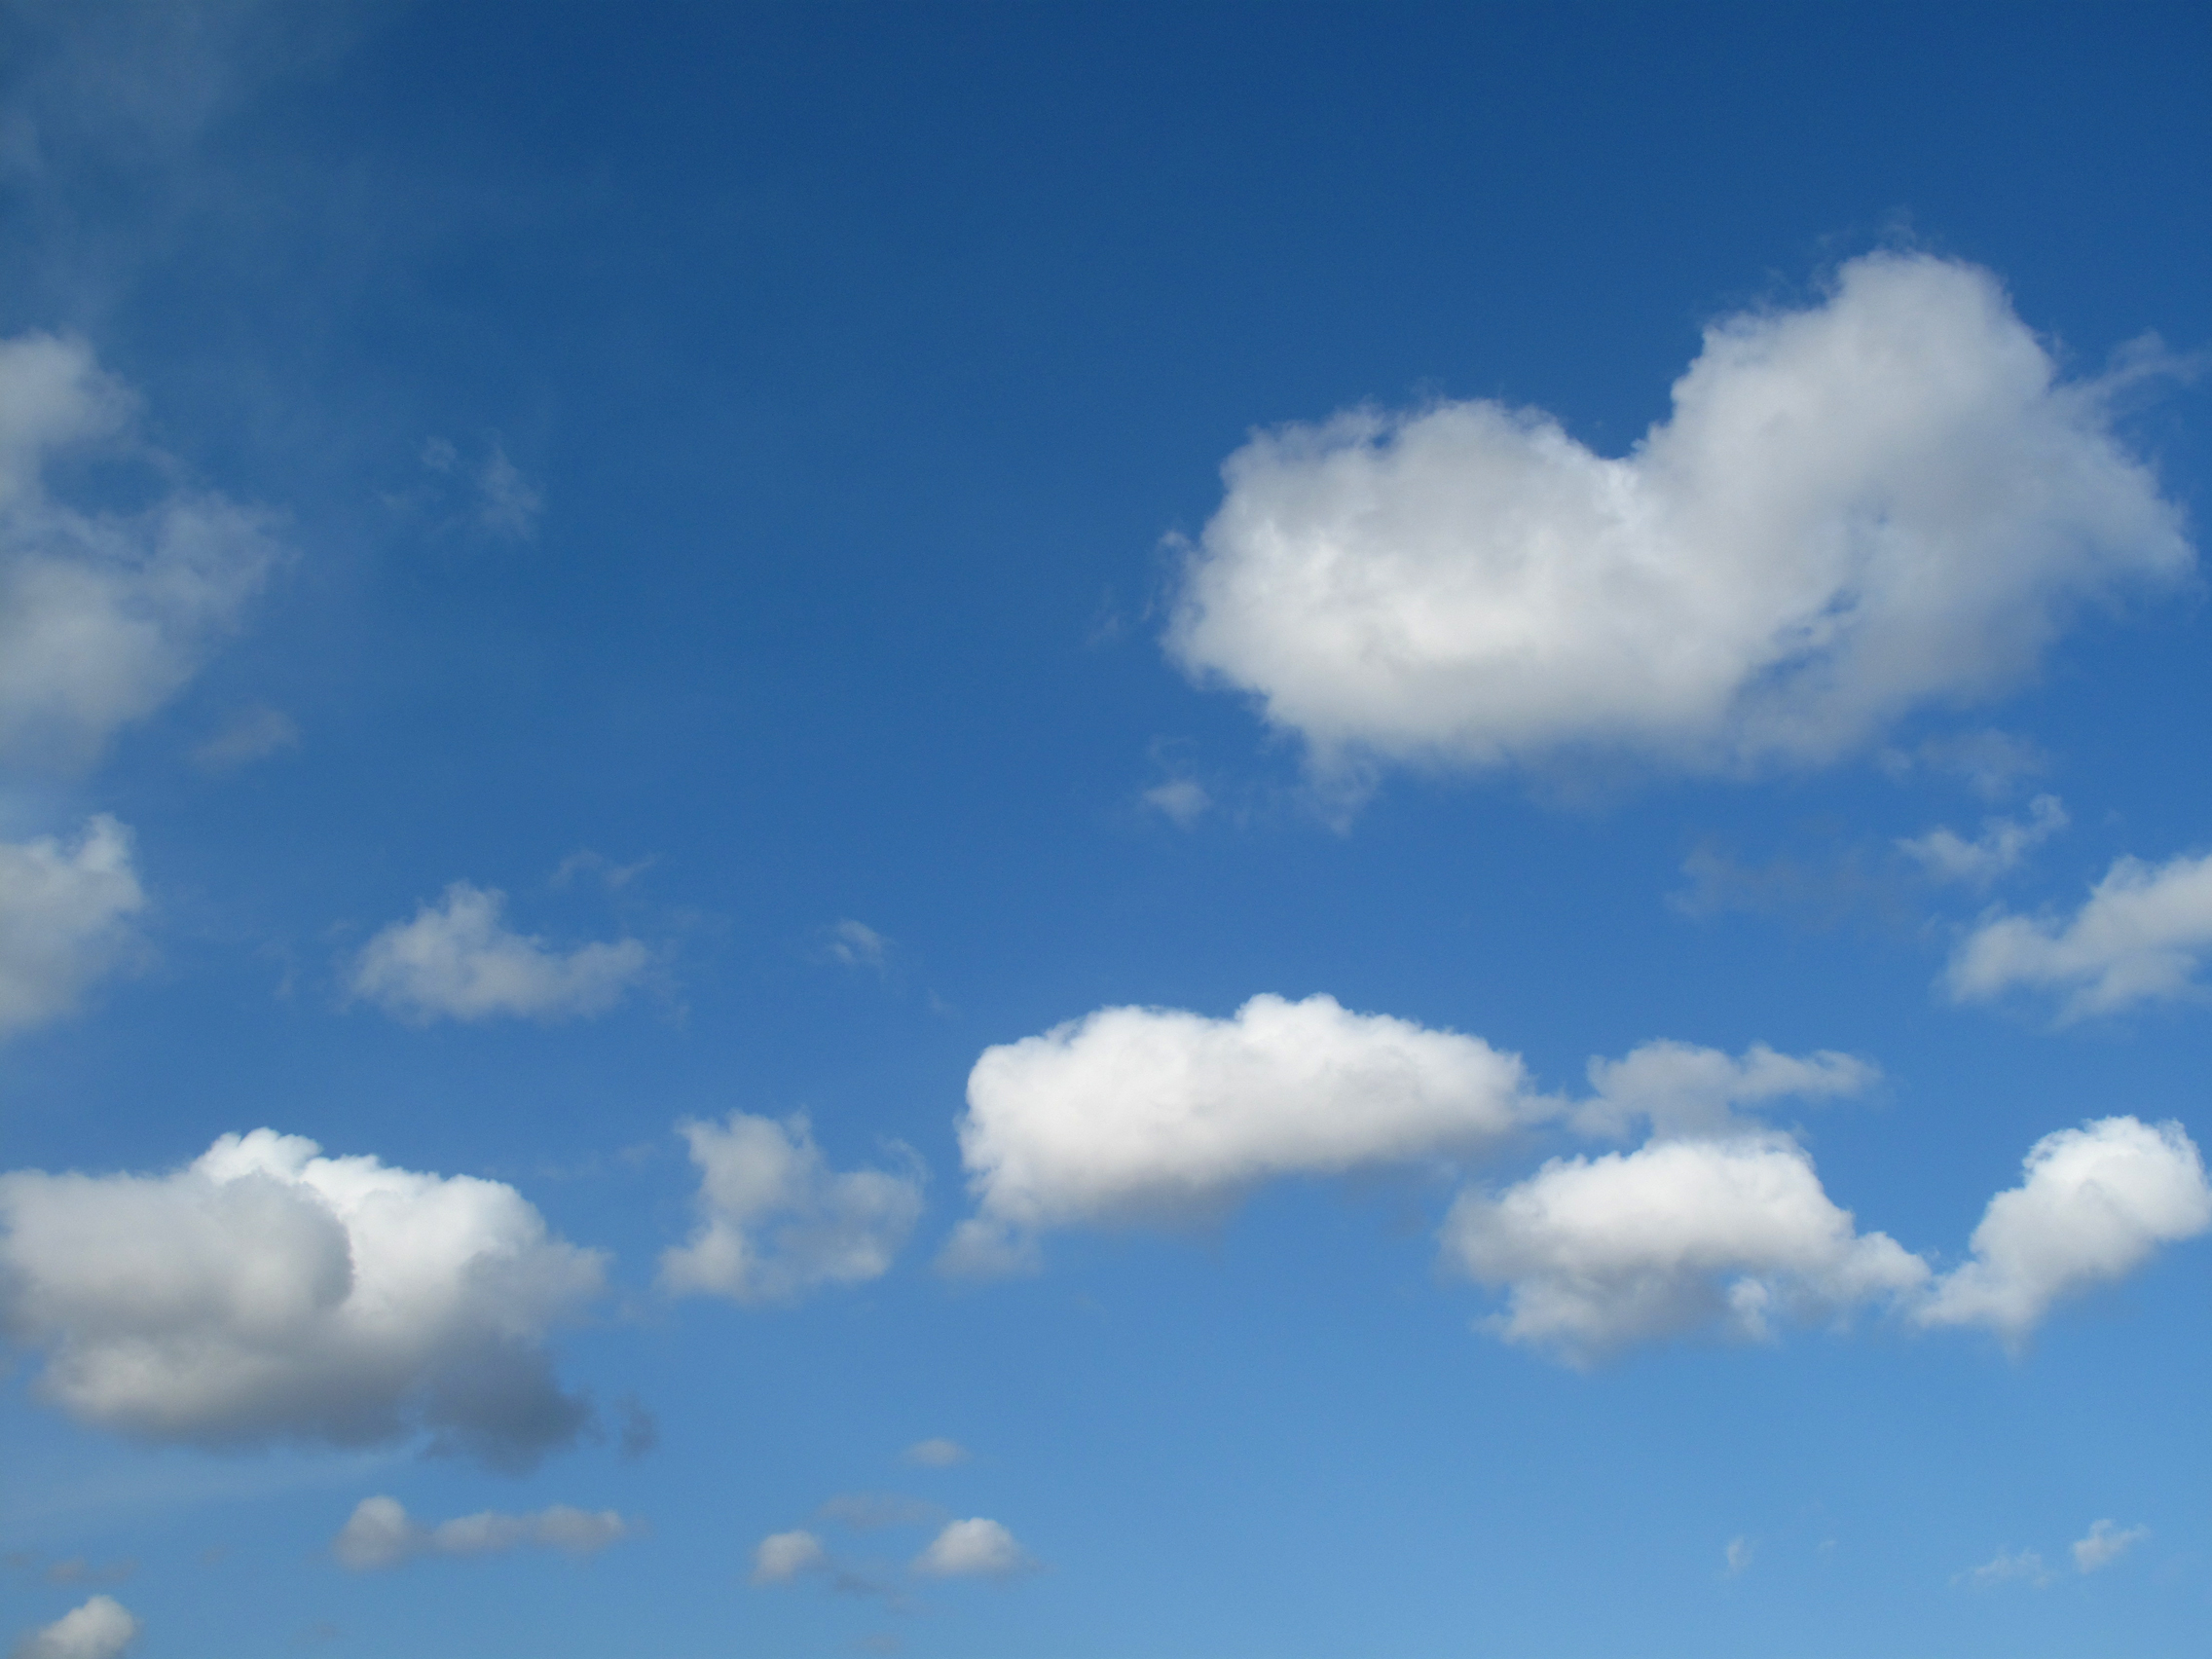 Cloudy Day, FREE Stock Photo, Image, Picture: Cloudy Blue Sky ...